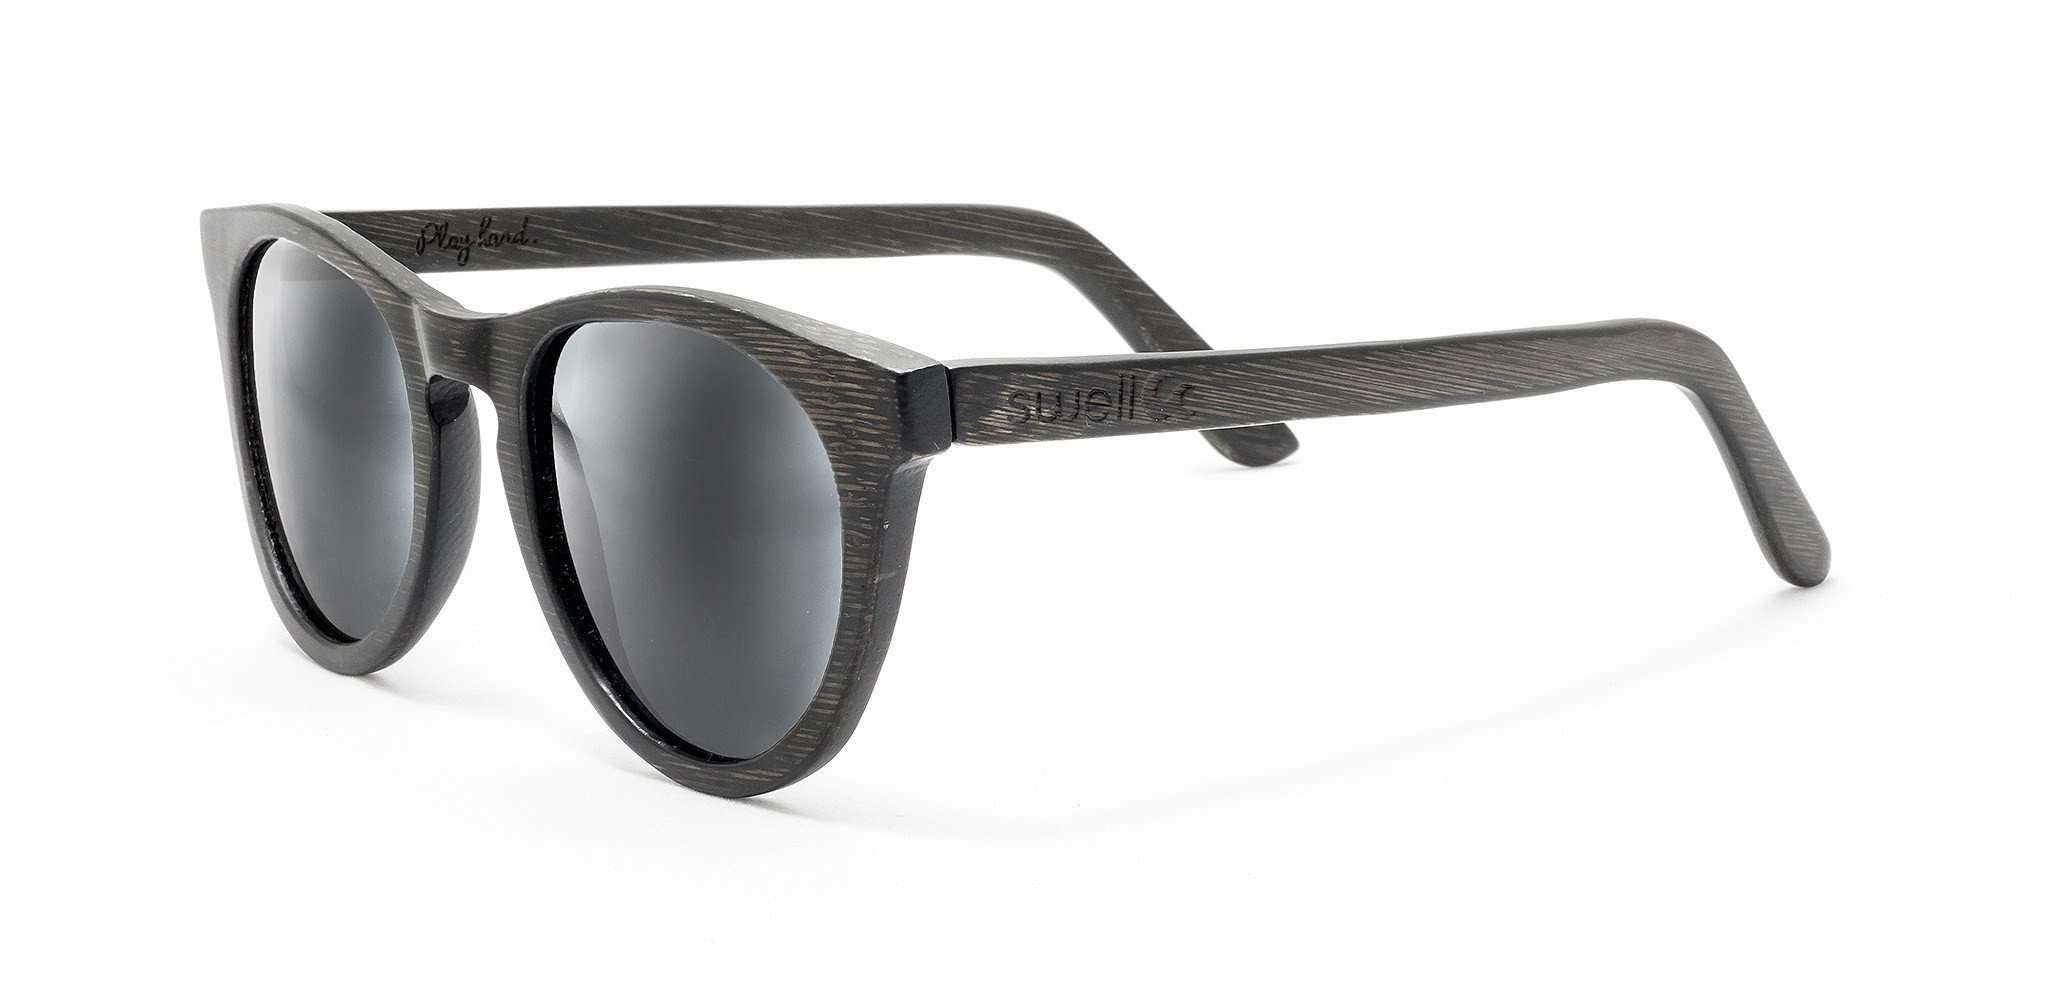 Alani Black Polarized Bamboo Sunglasses - SwellVision